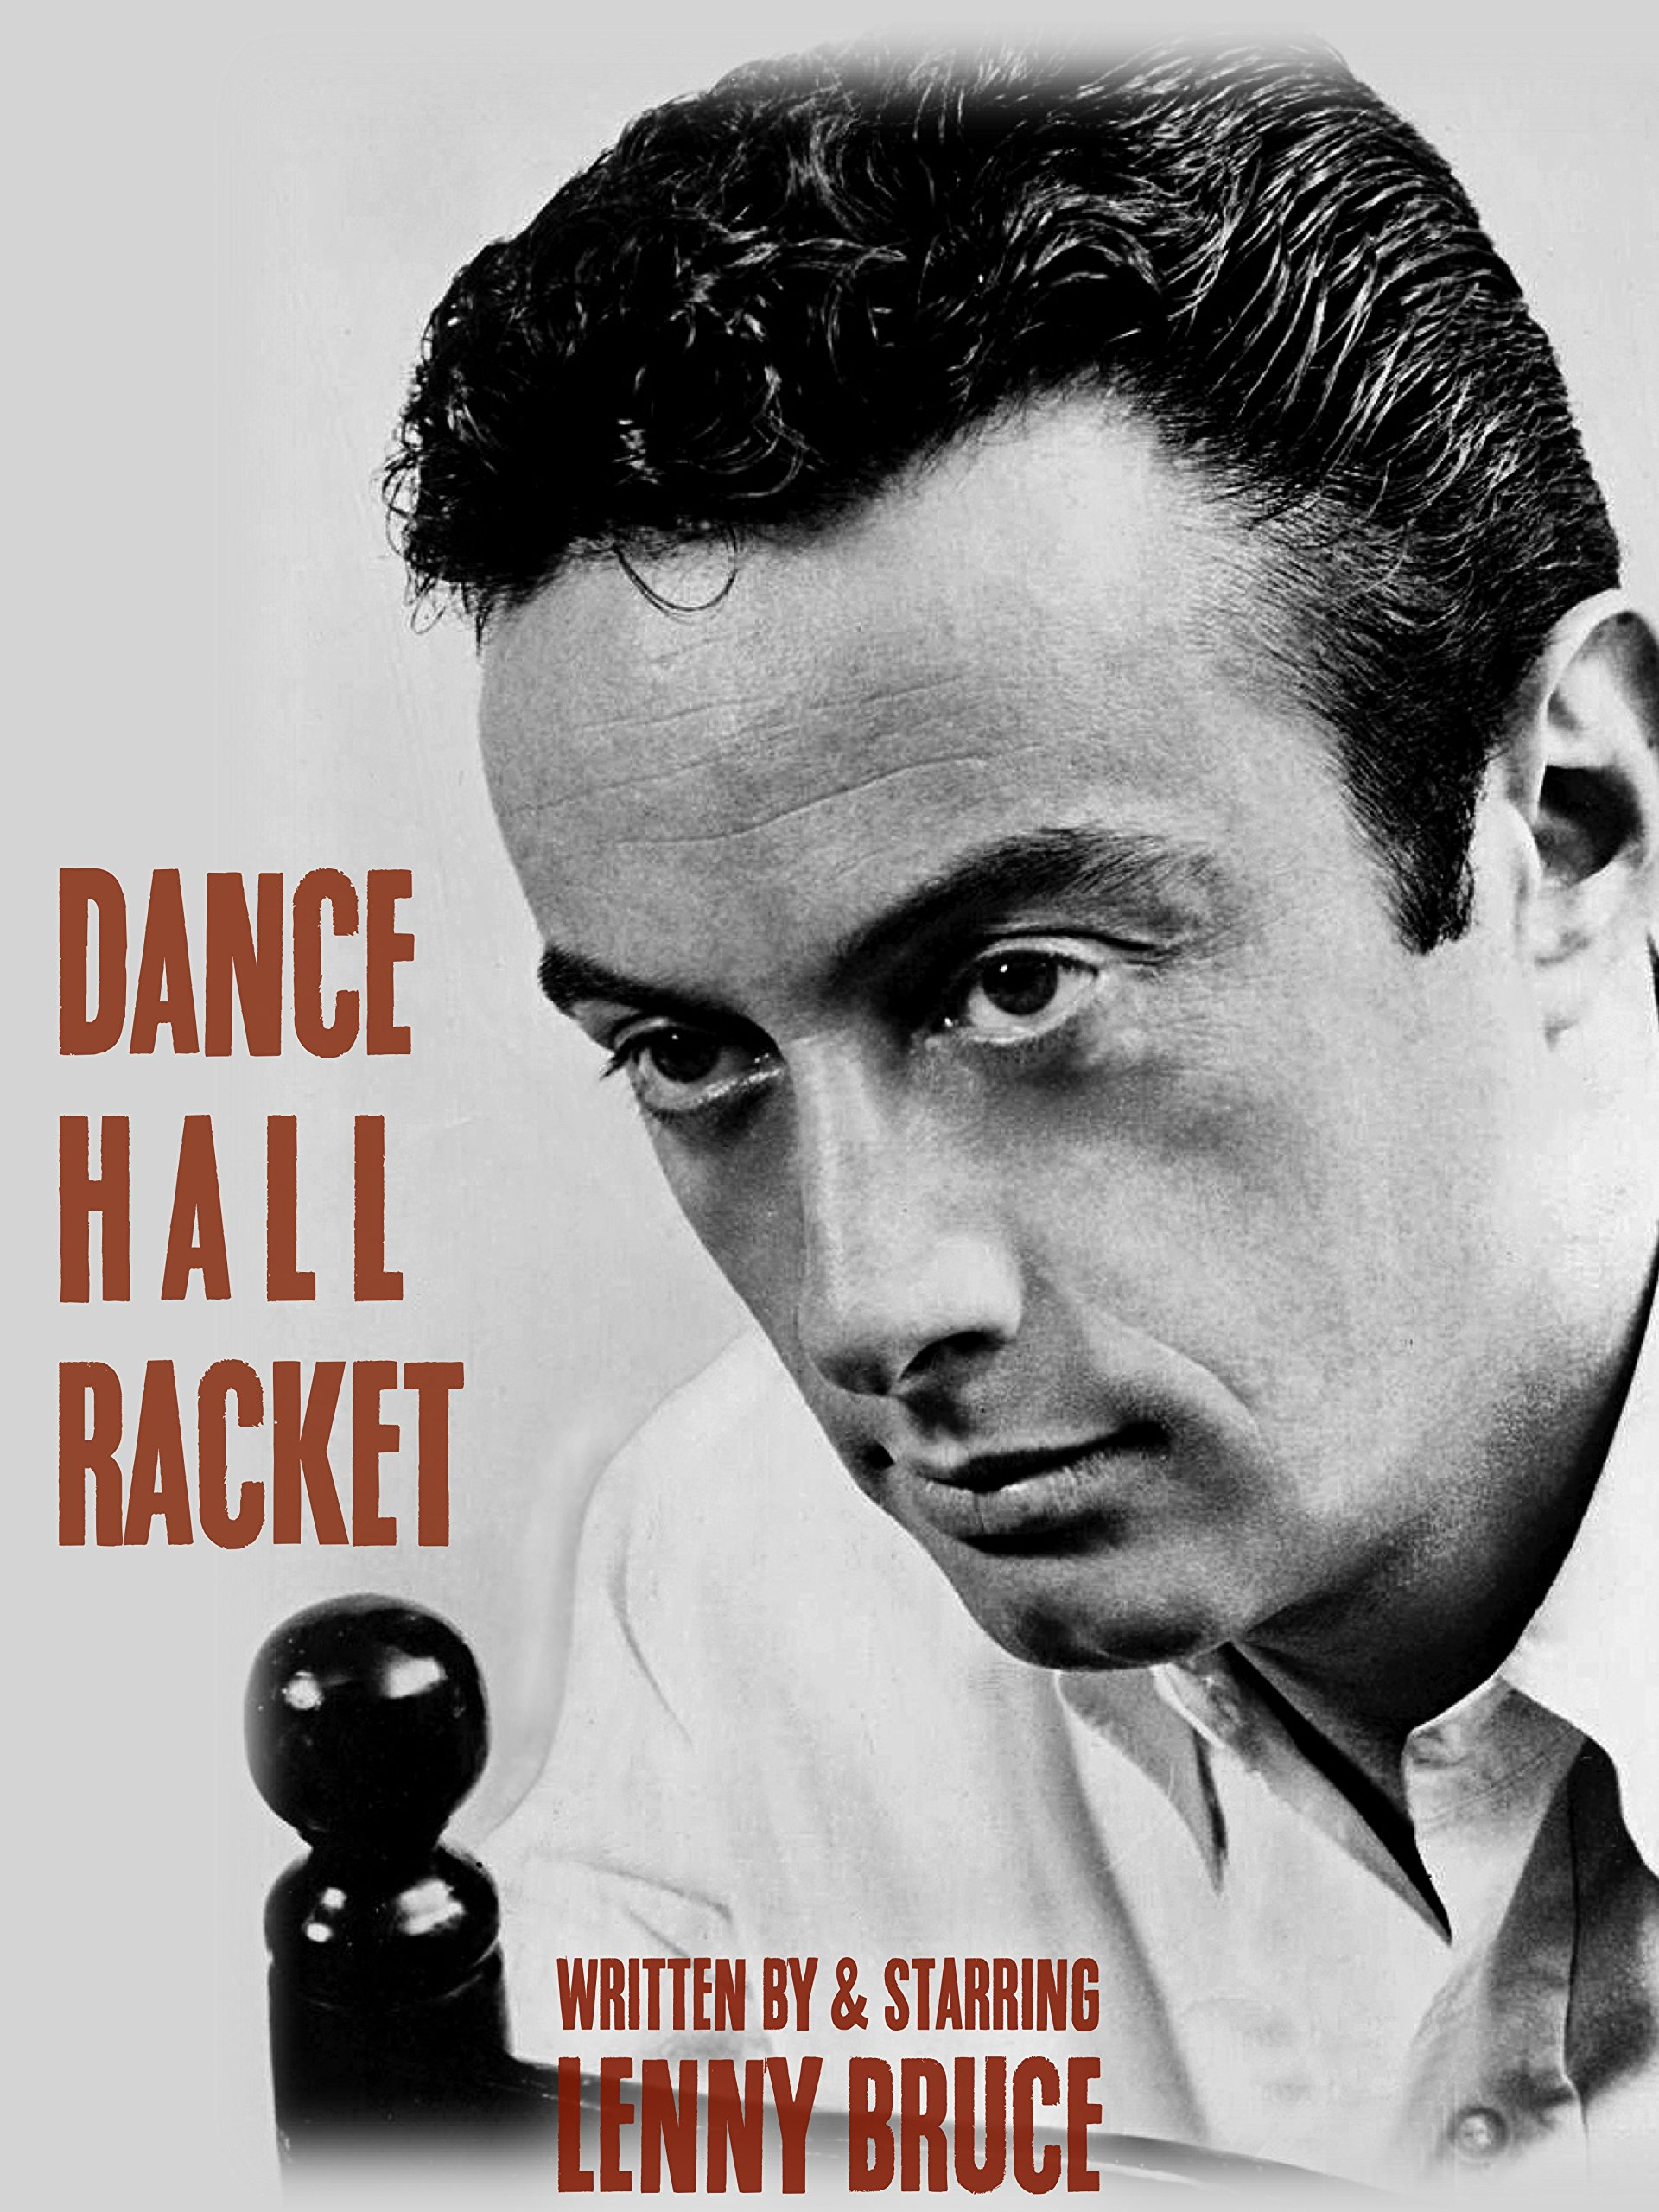 Dance Hall Racket (written by & starring Lenny Bruce)